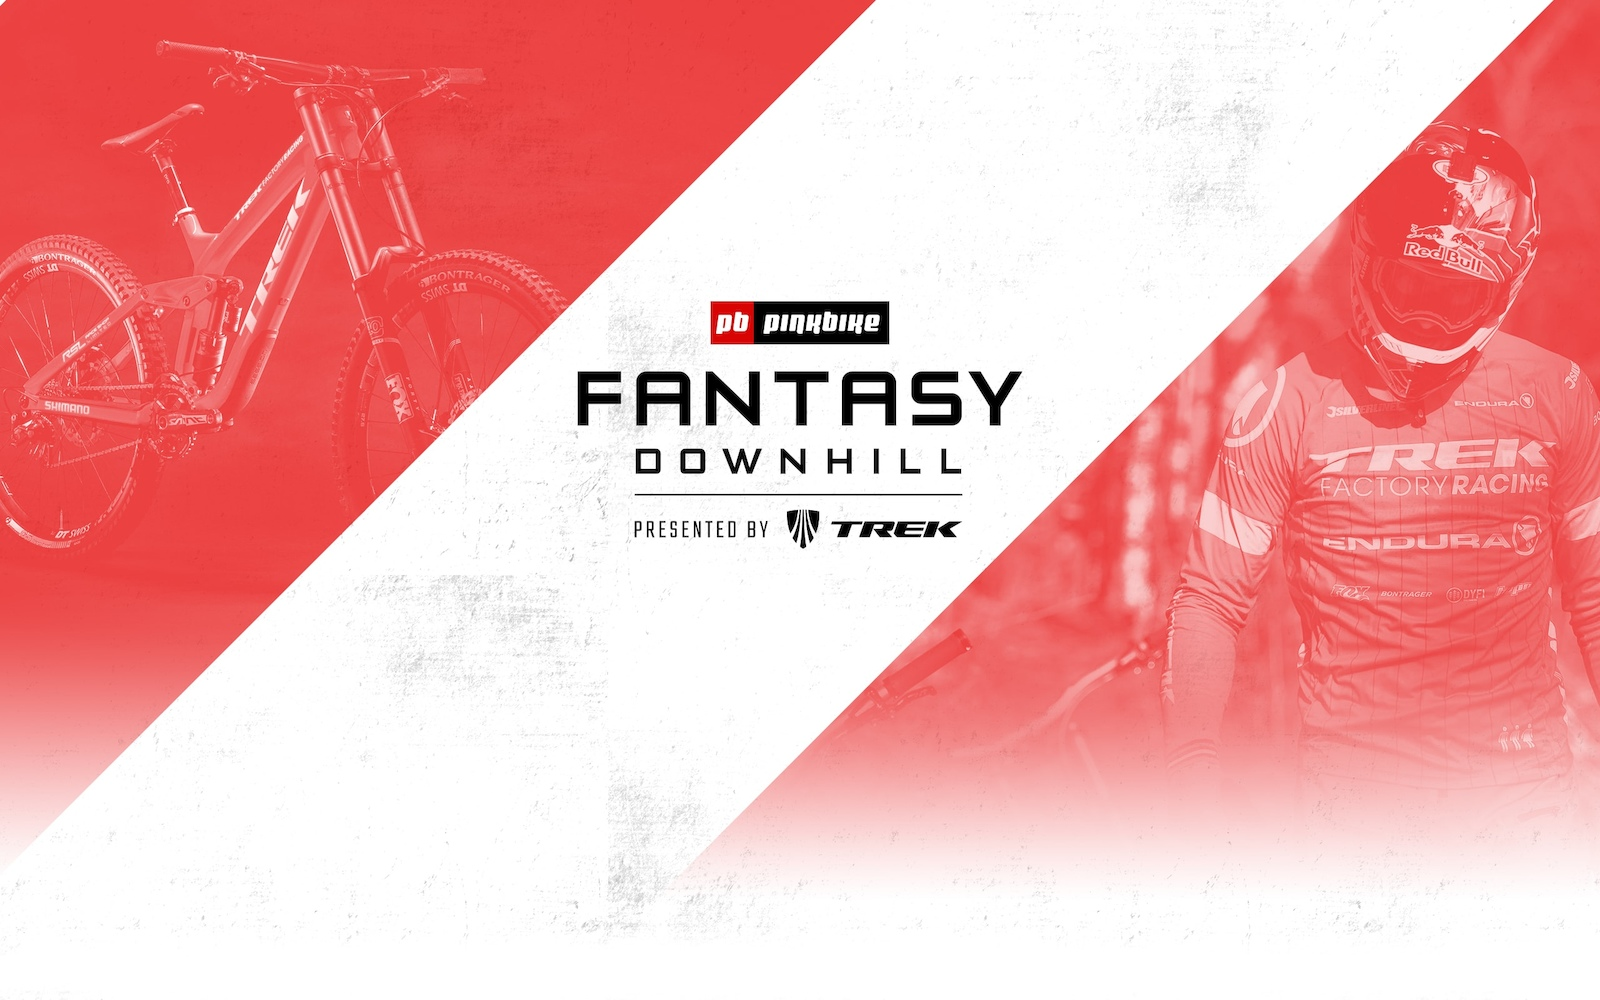 Pinkbike s DH Fantasy League Fantasy Downhill Presented by trekbikes